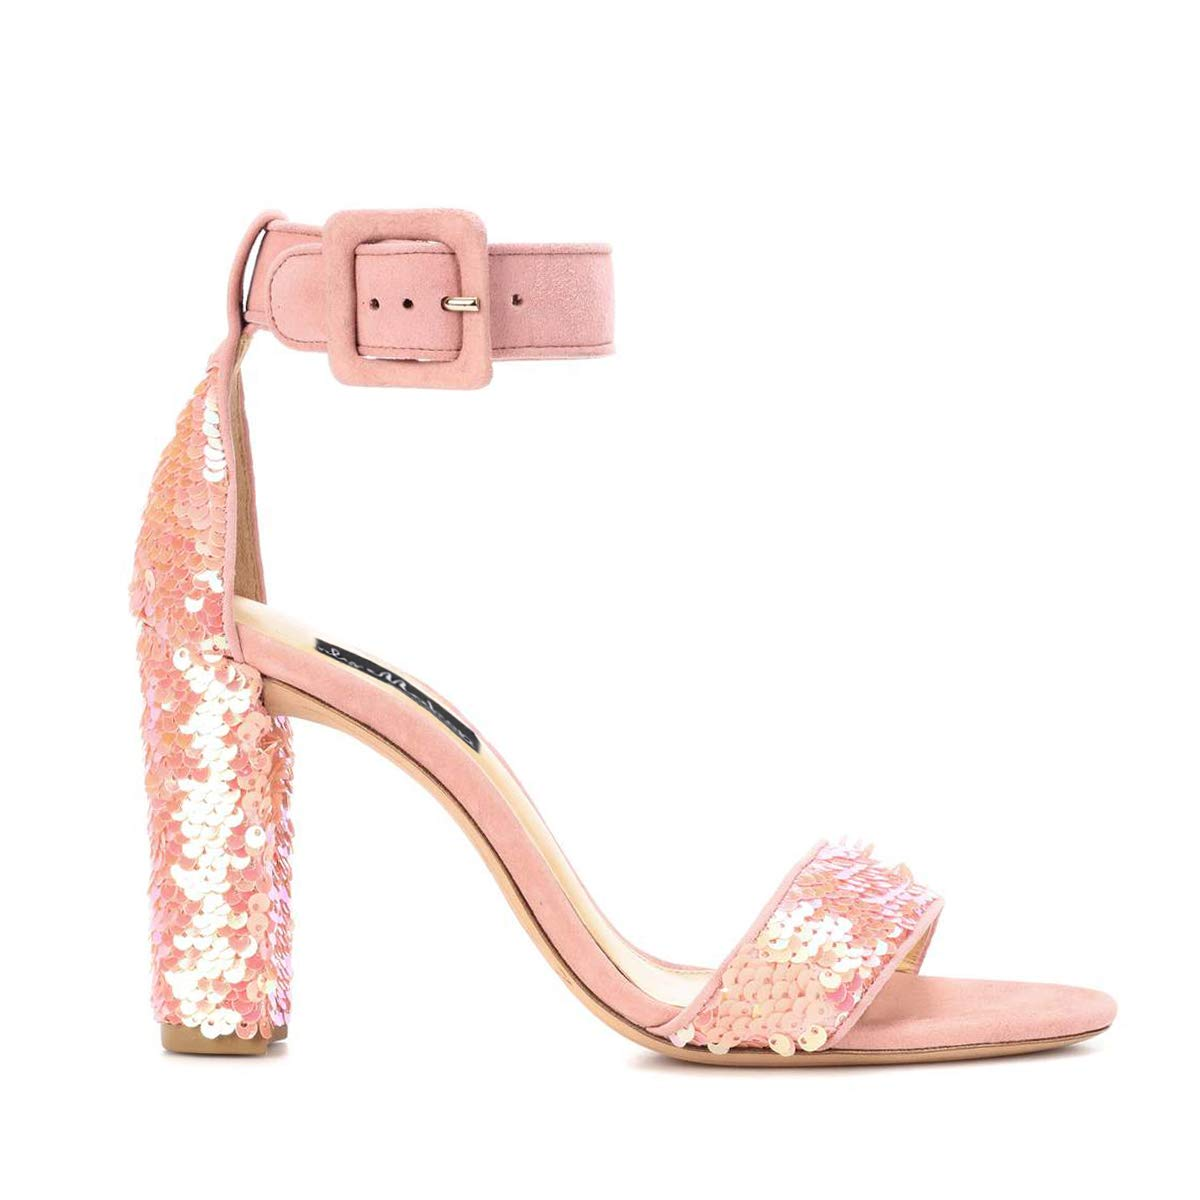 Women's Pink Sparkle Sequin High Block Chunky Heel Ankle Strap Sandals - DeluxeAdultCostumes.com